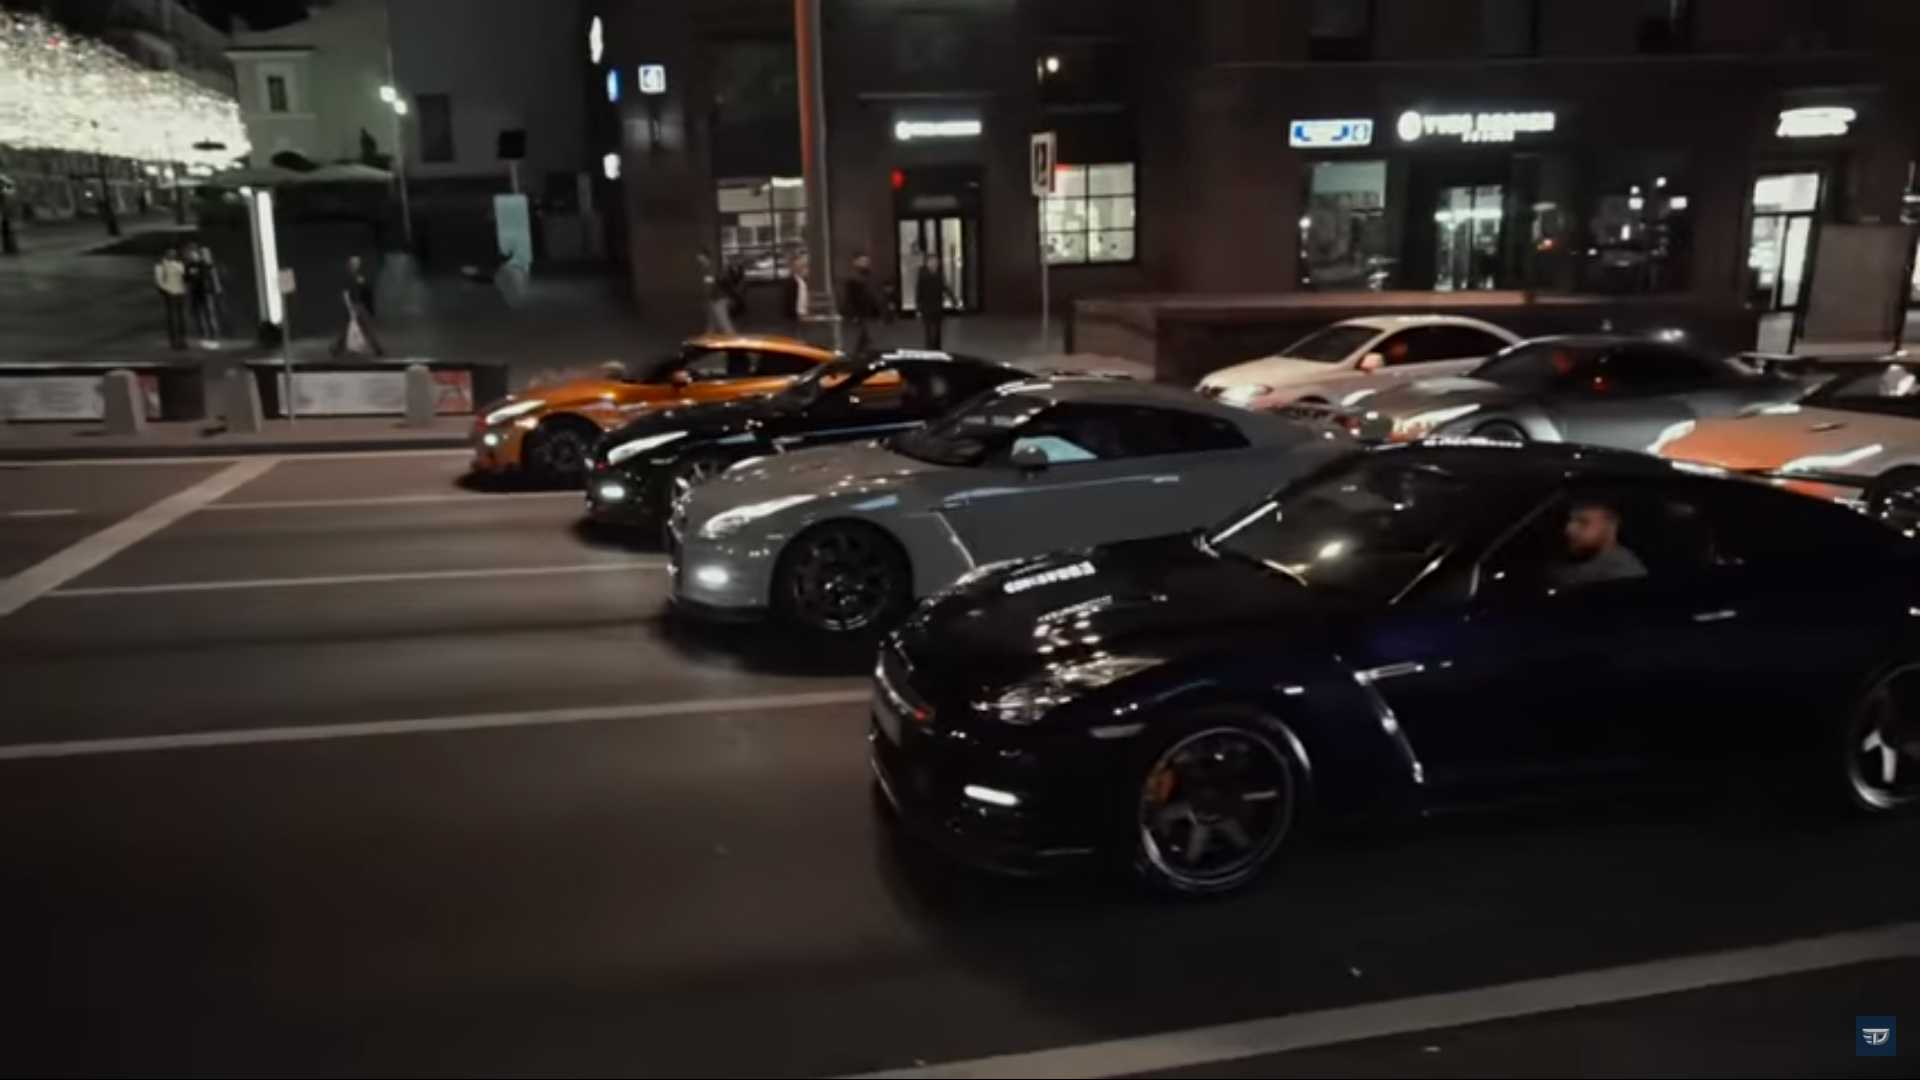 Godzilla invasion: 40 Nissan GT-Rs come together in Russia